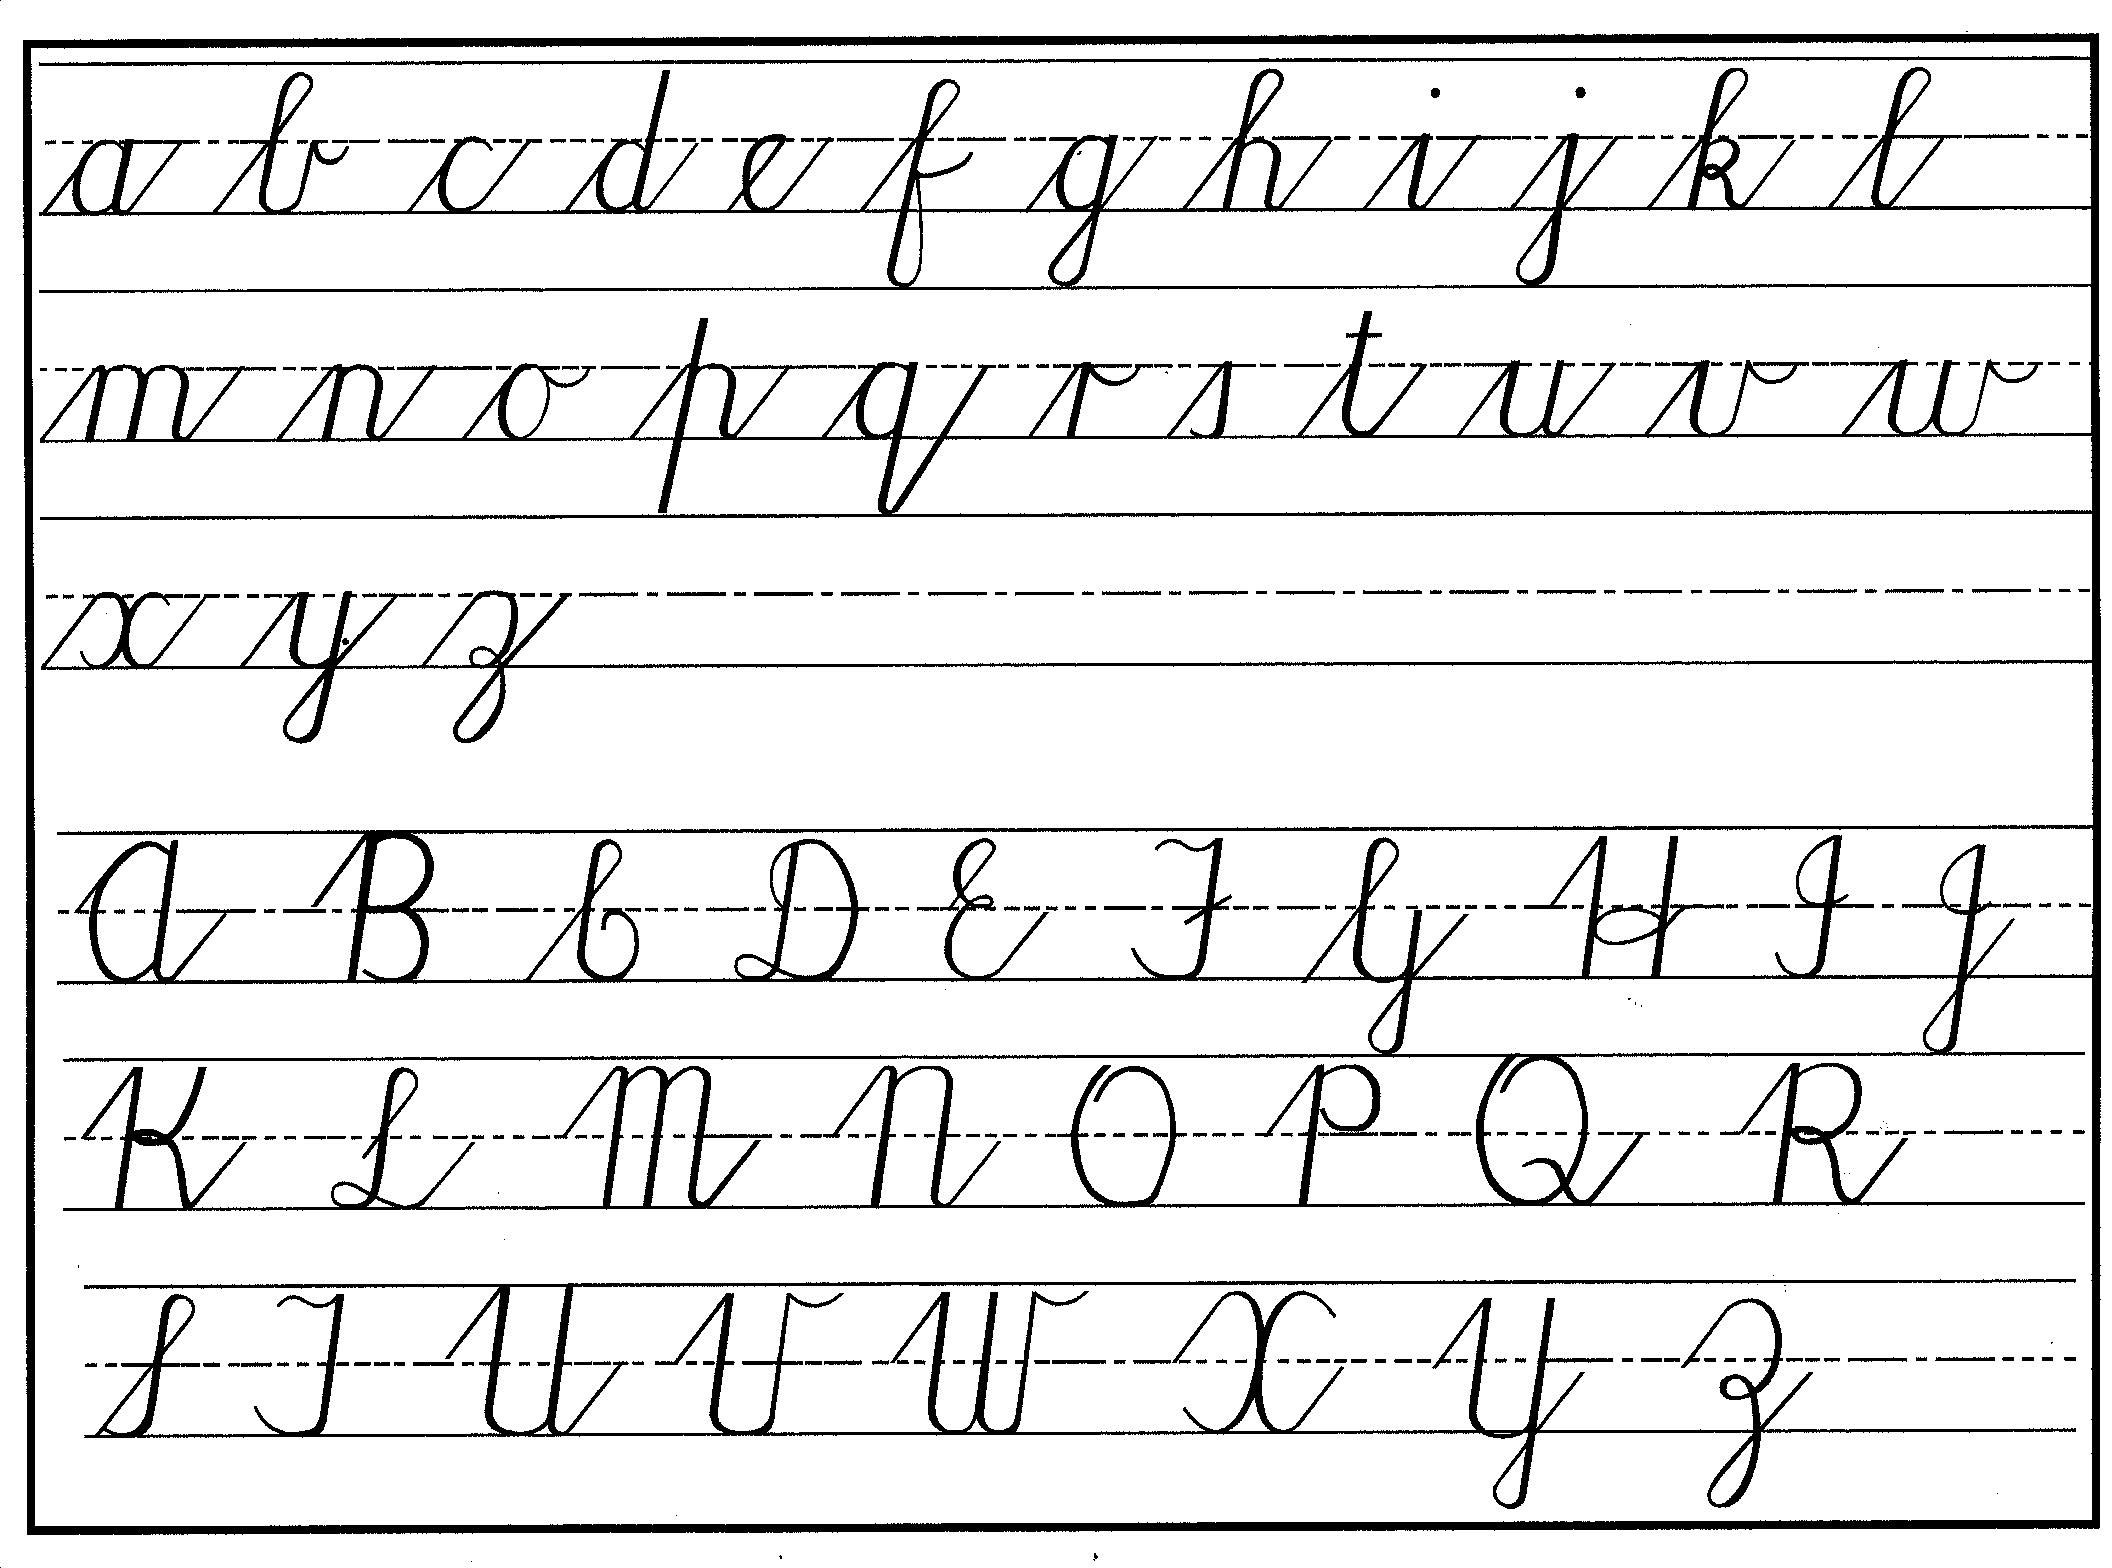 Worksheets Abc Cursive Writing cursive handwriting step by for beginners charts apparently writing and reading of is foreign to the younger generation